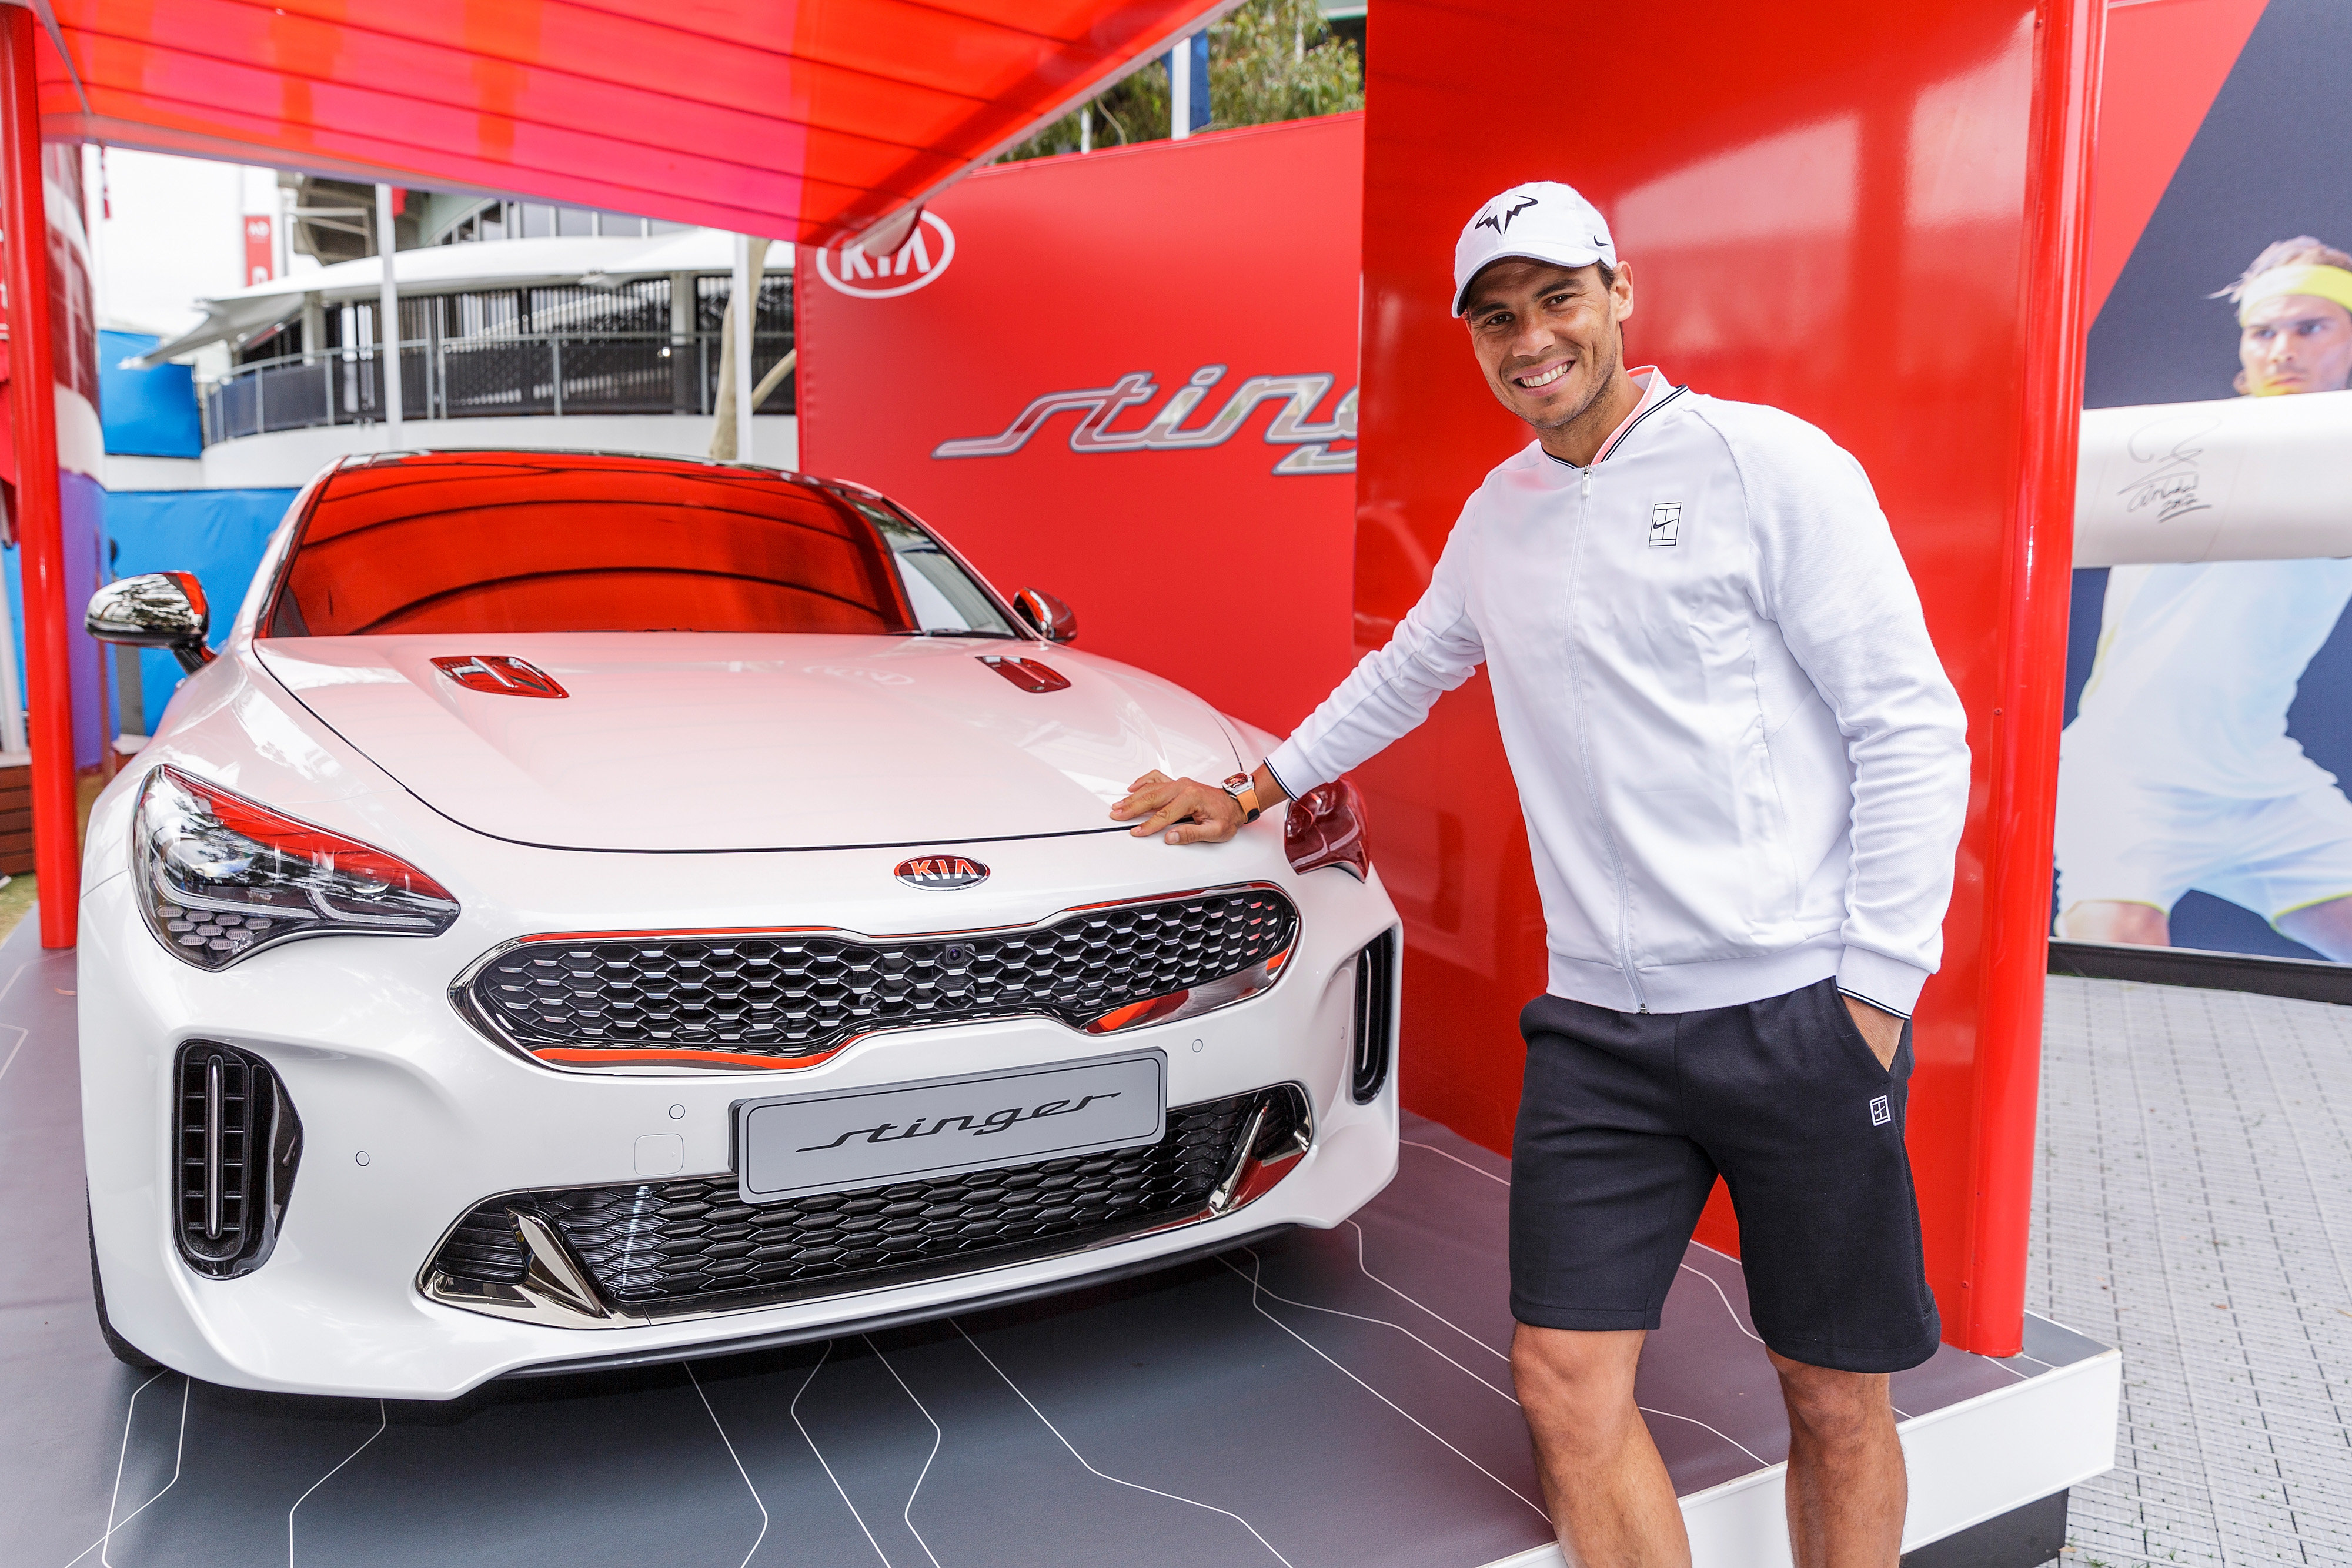 Kia aces comfort and safety at the Australian Open